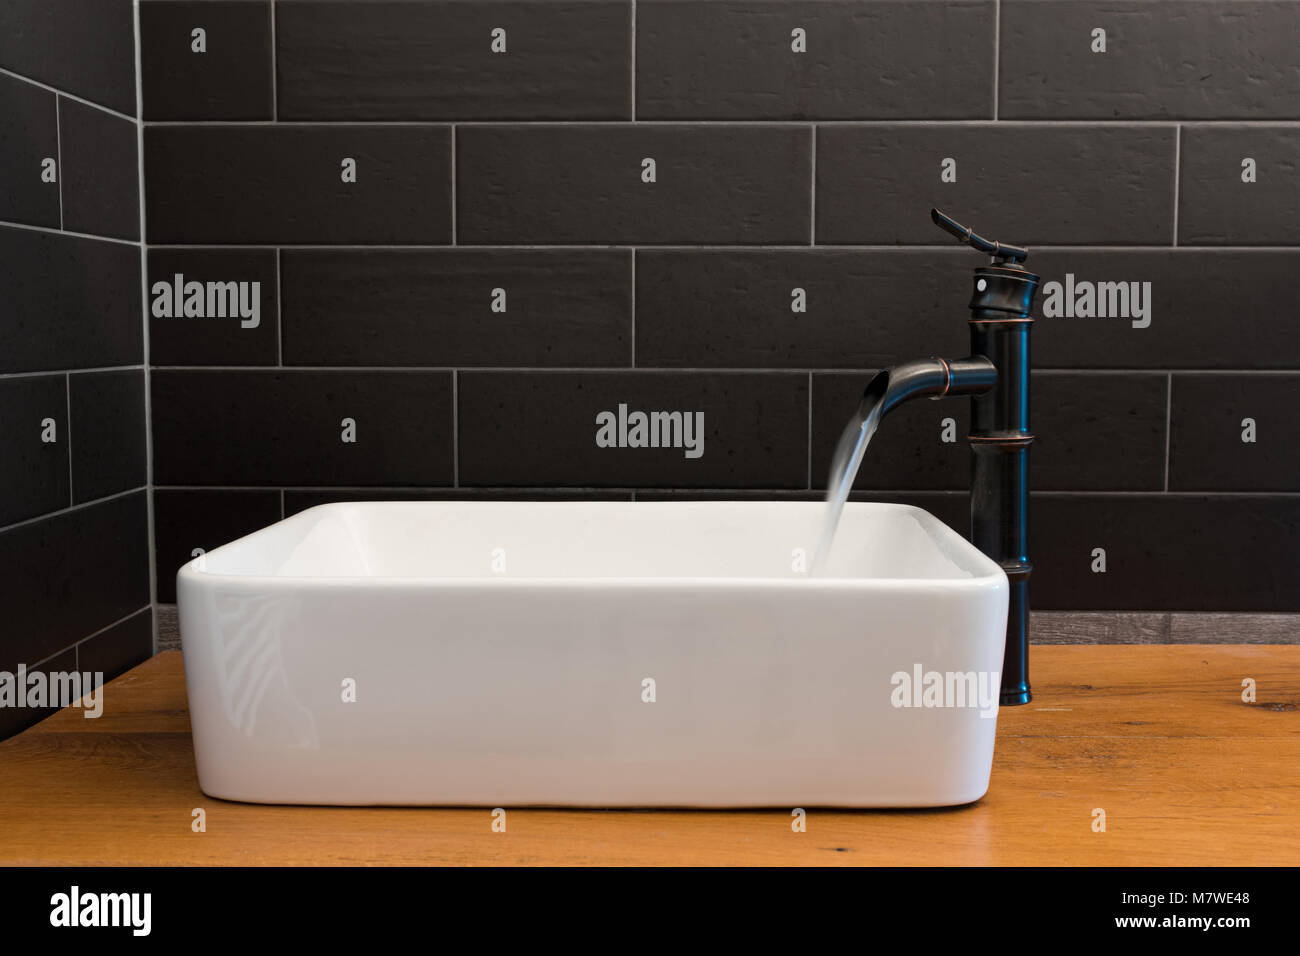 Modern white square sink in bathroom with black tiles and black ...